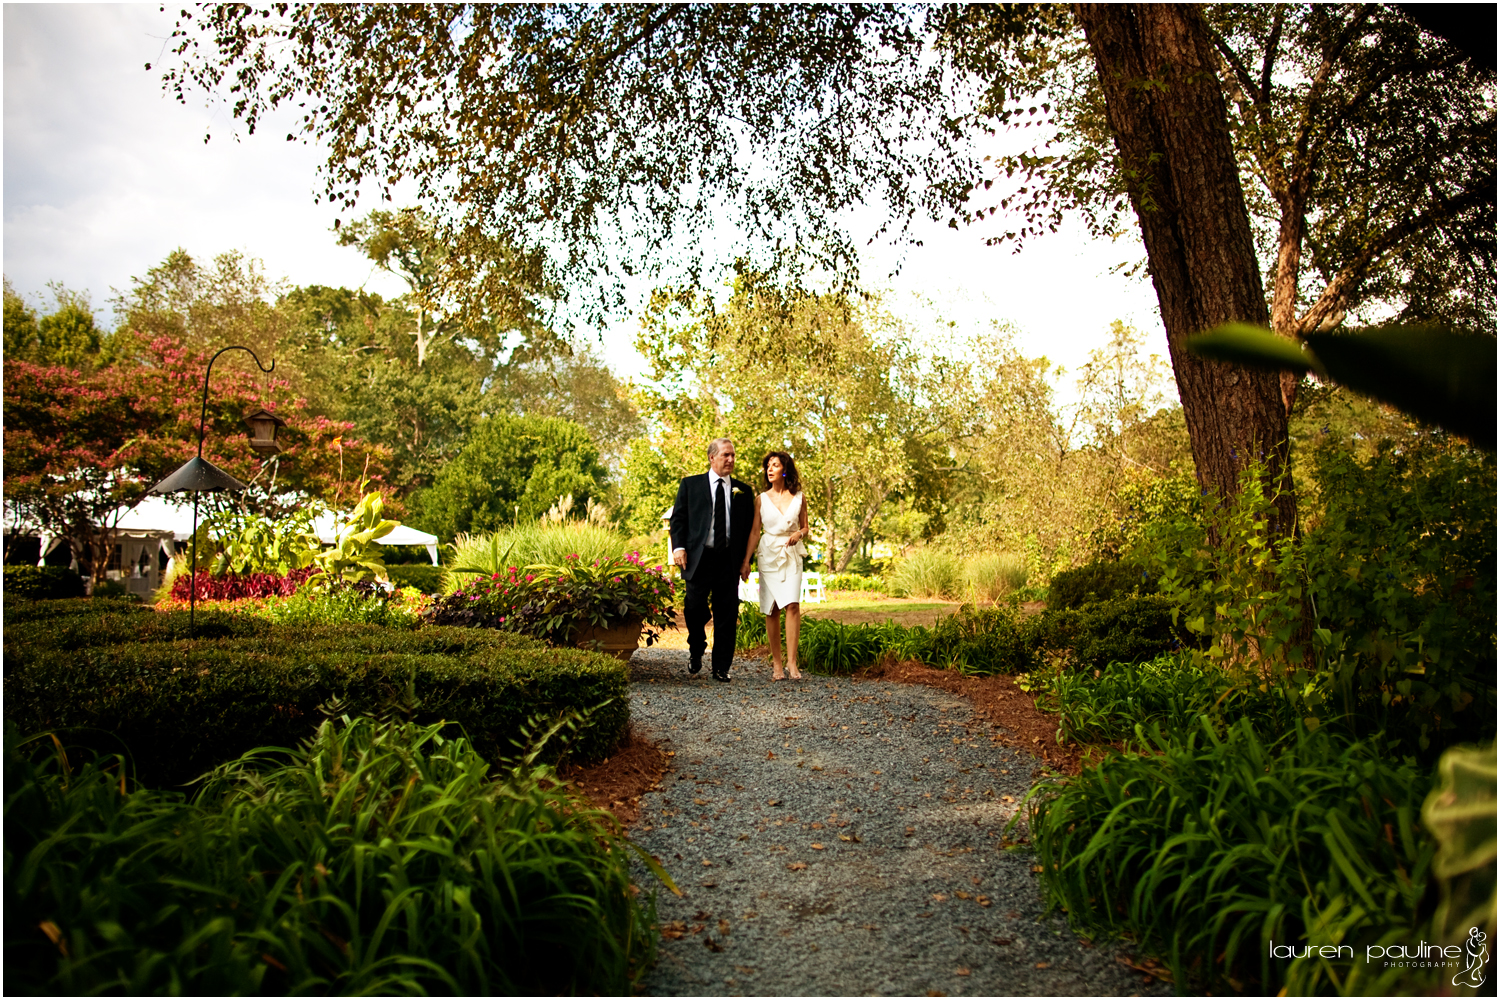 Canoe Wedding Photos Atlanta, Georgia